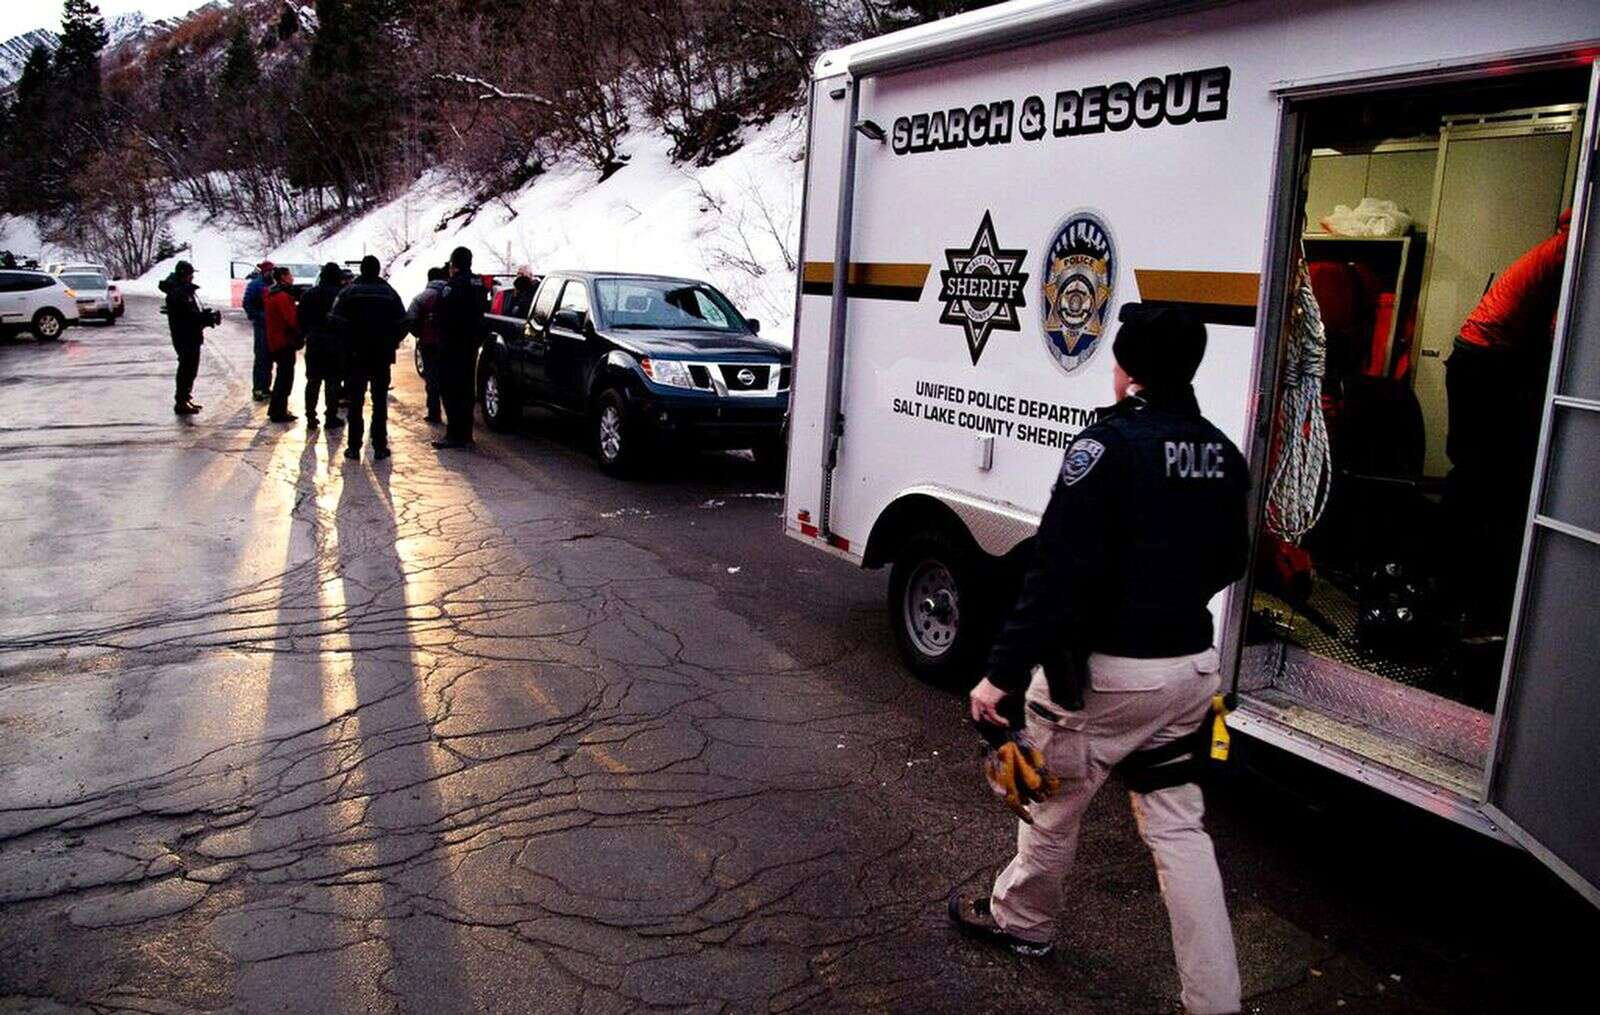 Utah police: Avalanche killed 4 local backcountry skiers near Salt Lake City